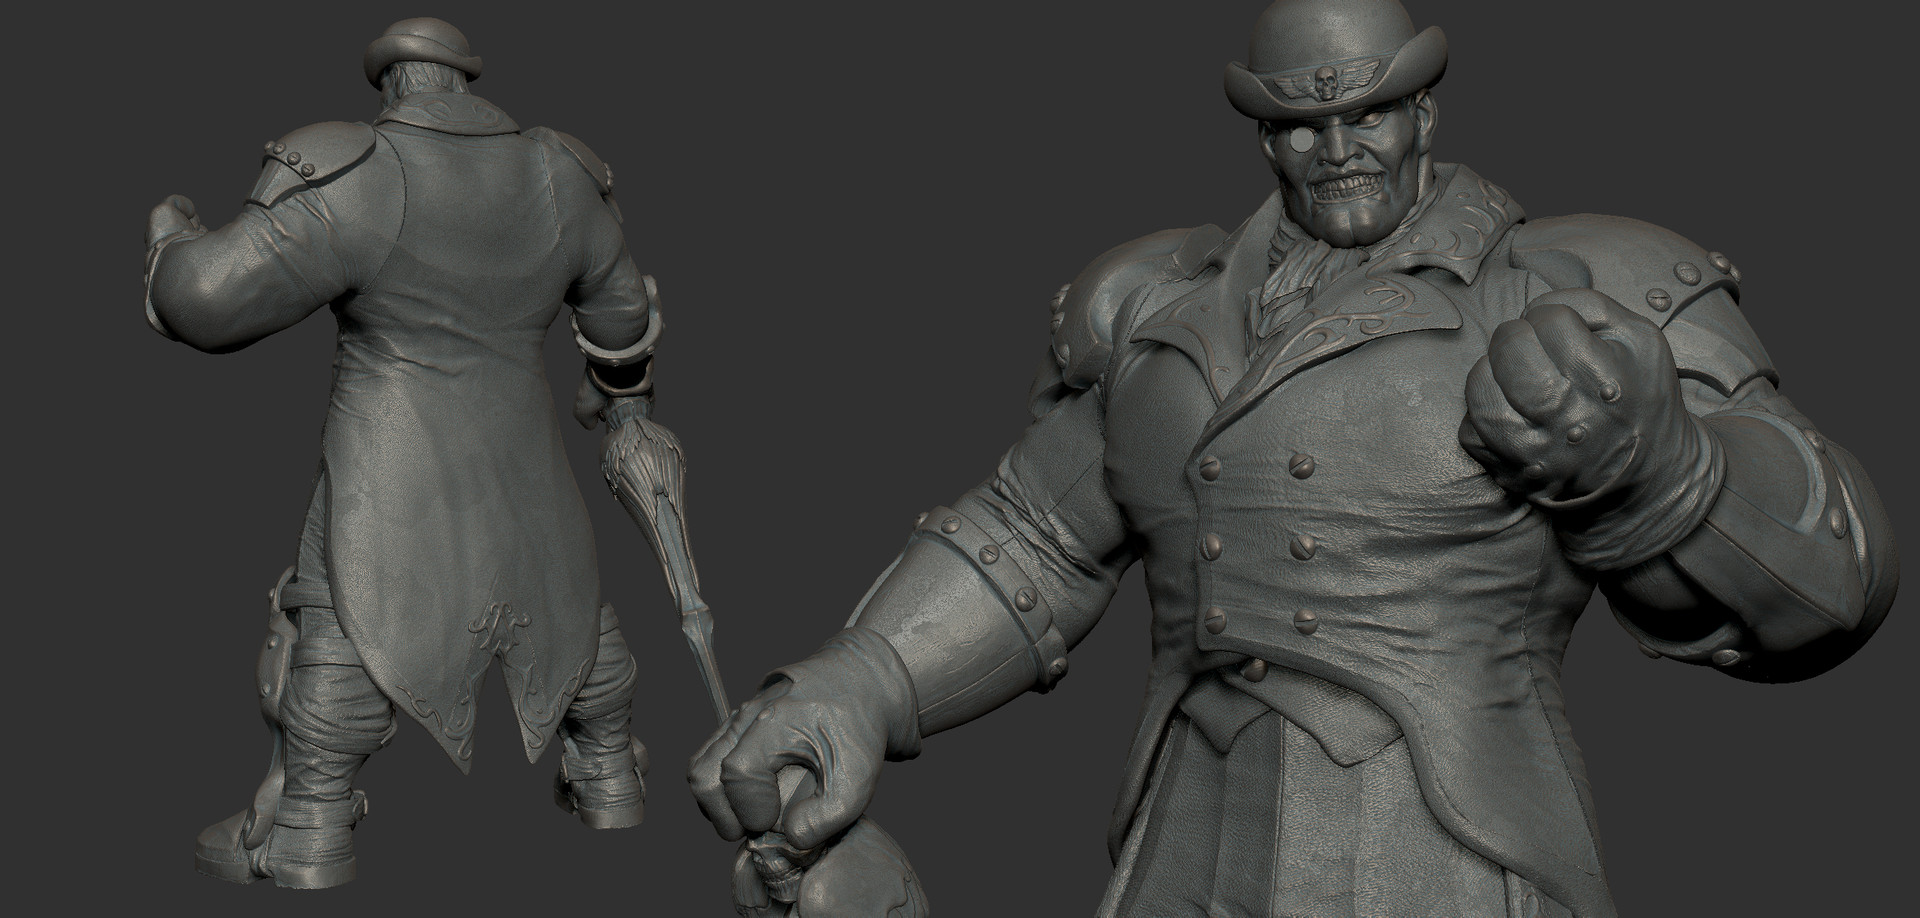 Vitamin imagination zbrush document2